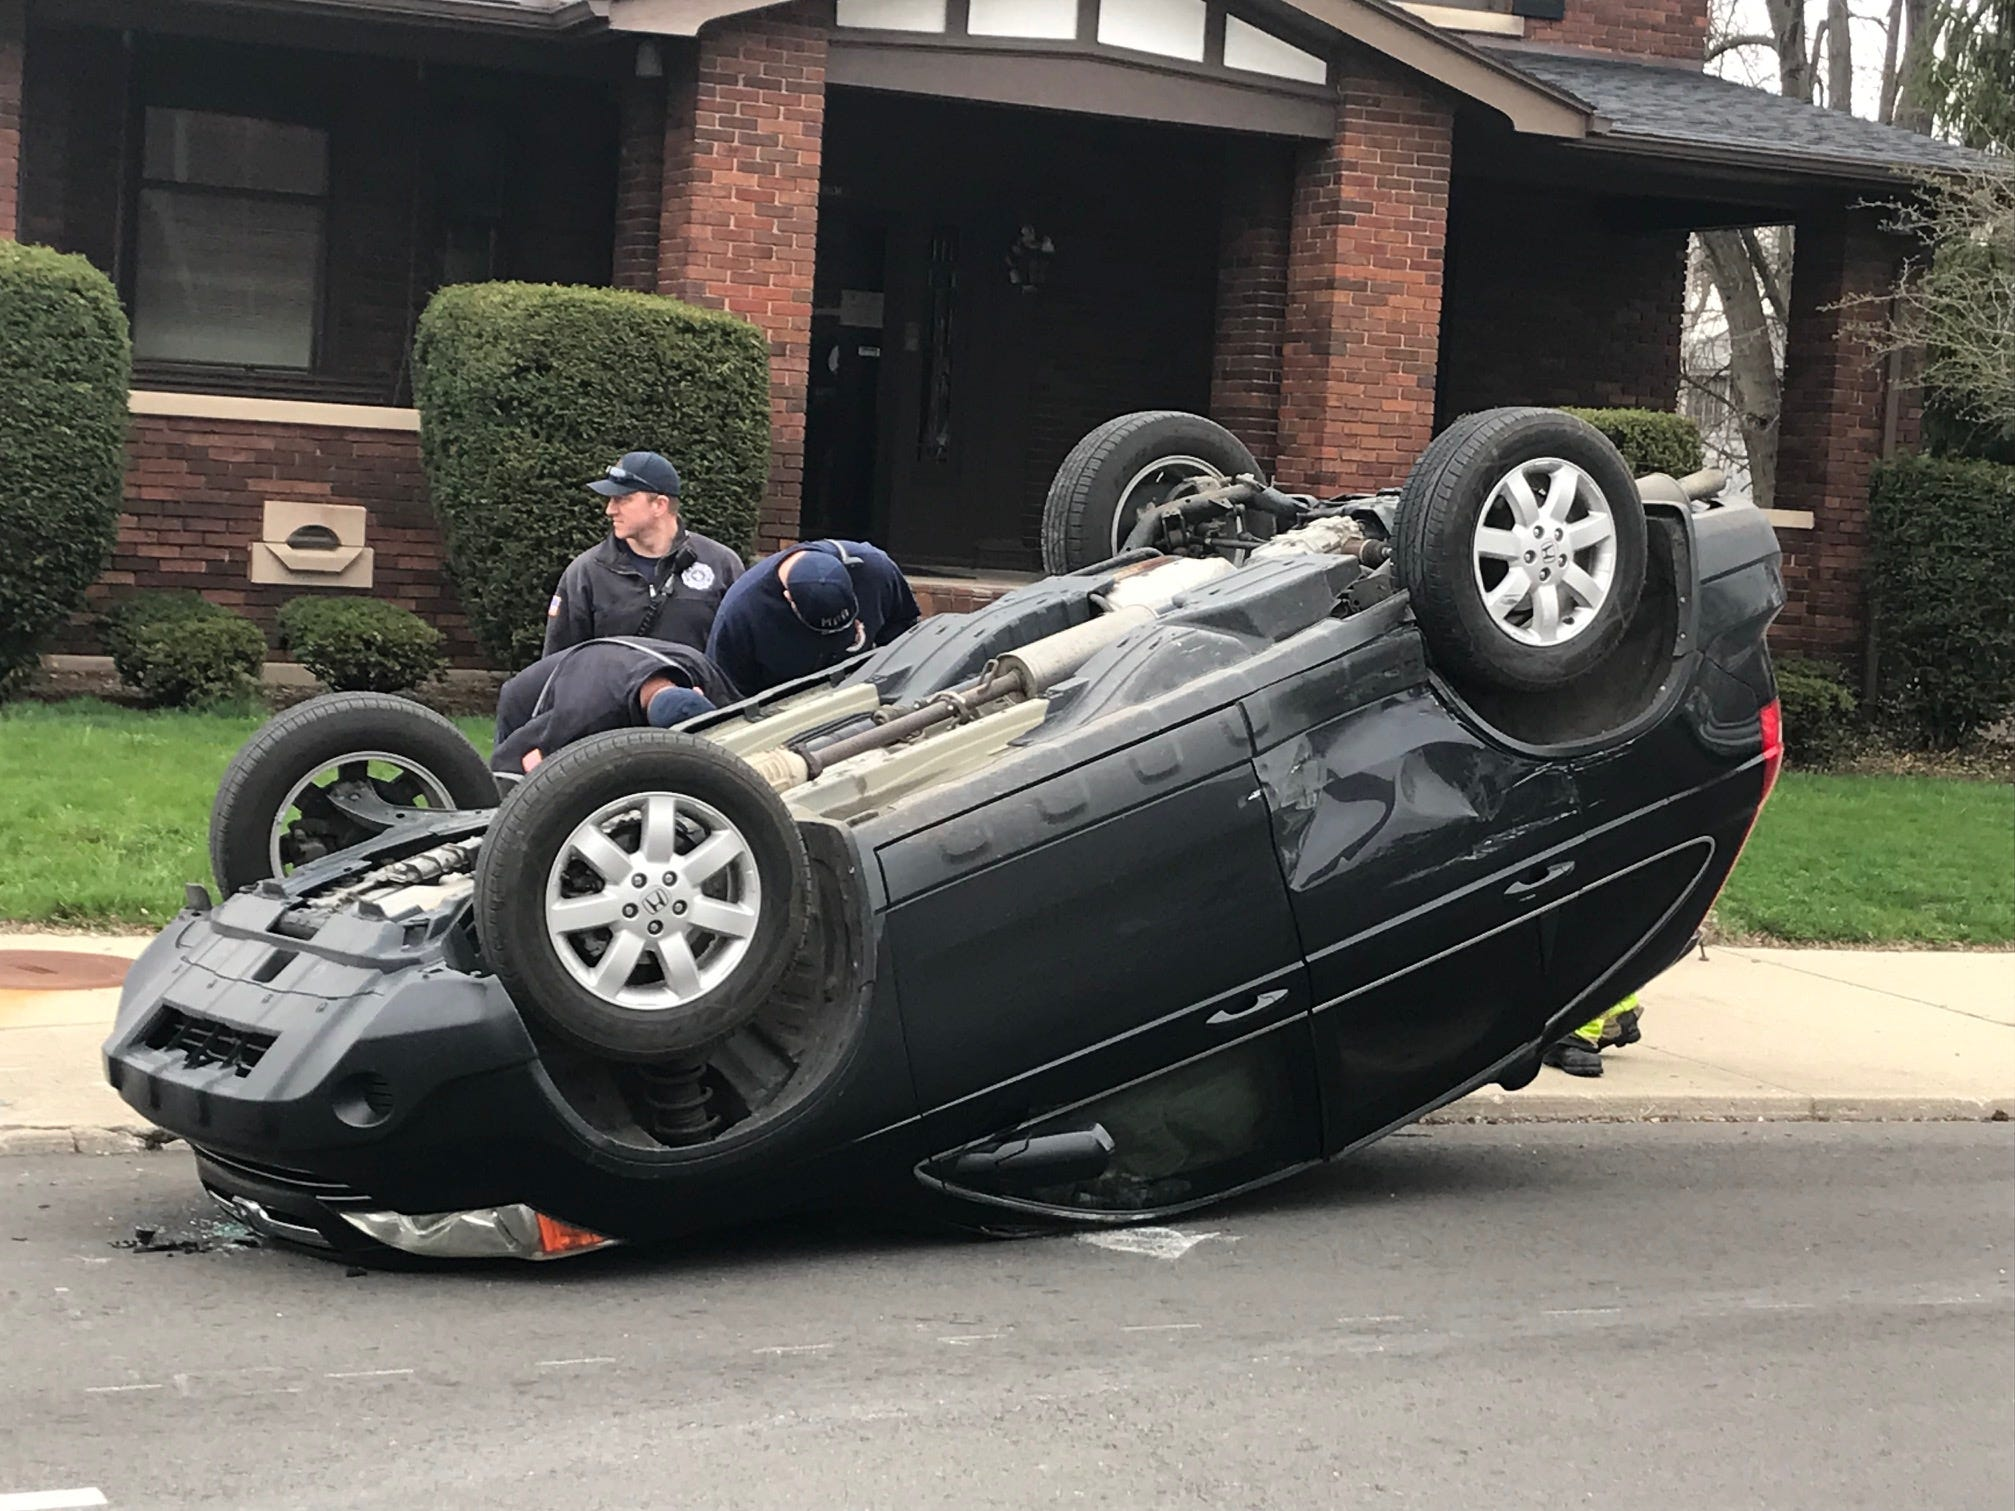 A two-vehicle accident shortly before 11 a.m. Wednesday at Madison and Washington streets left a Honda vehicle on its roof.